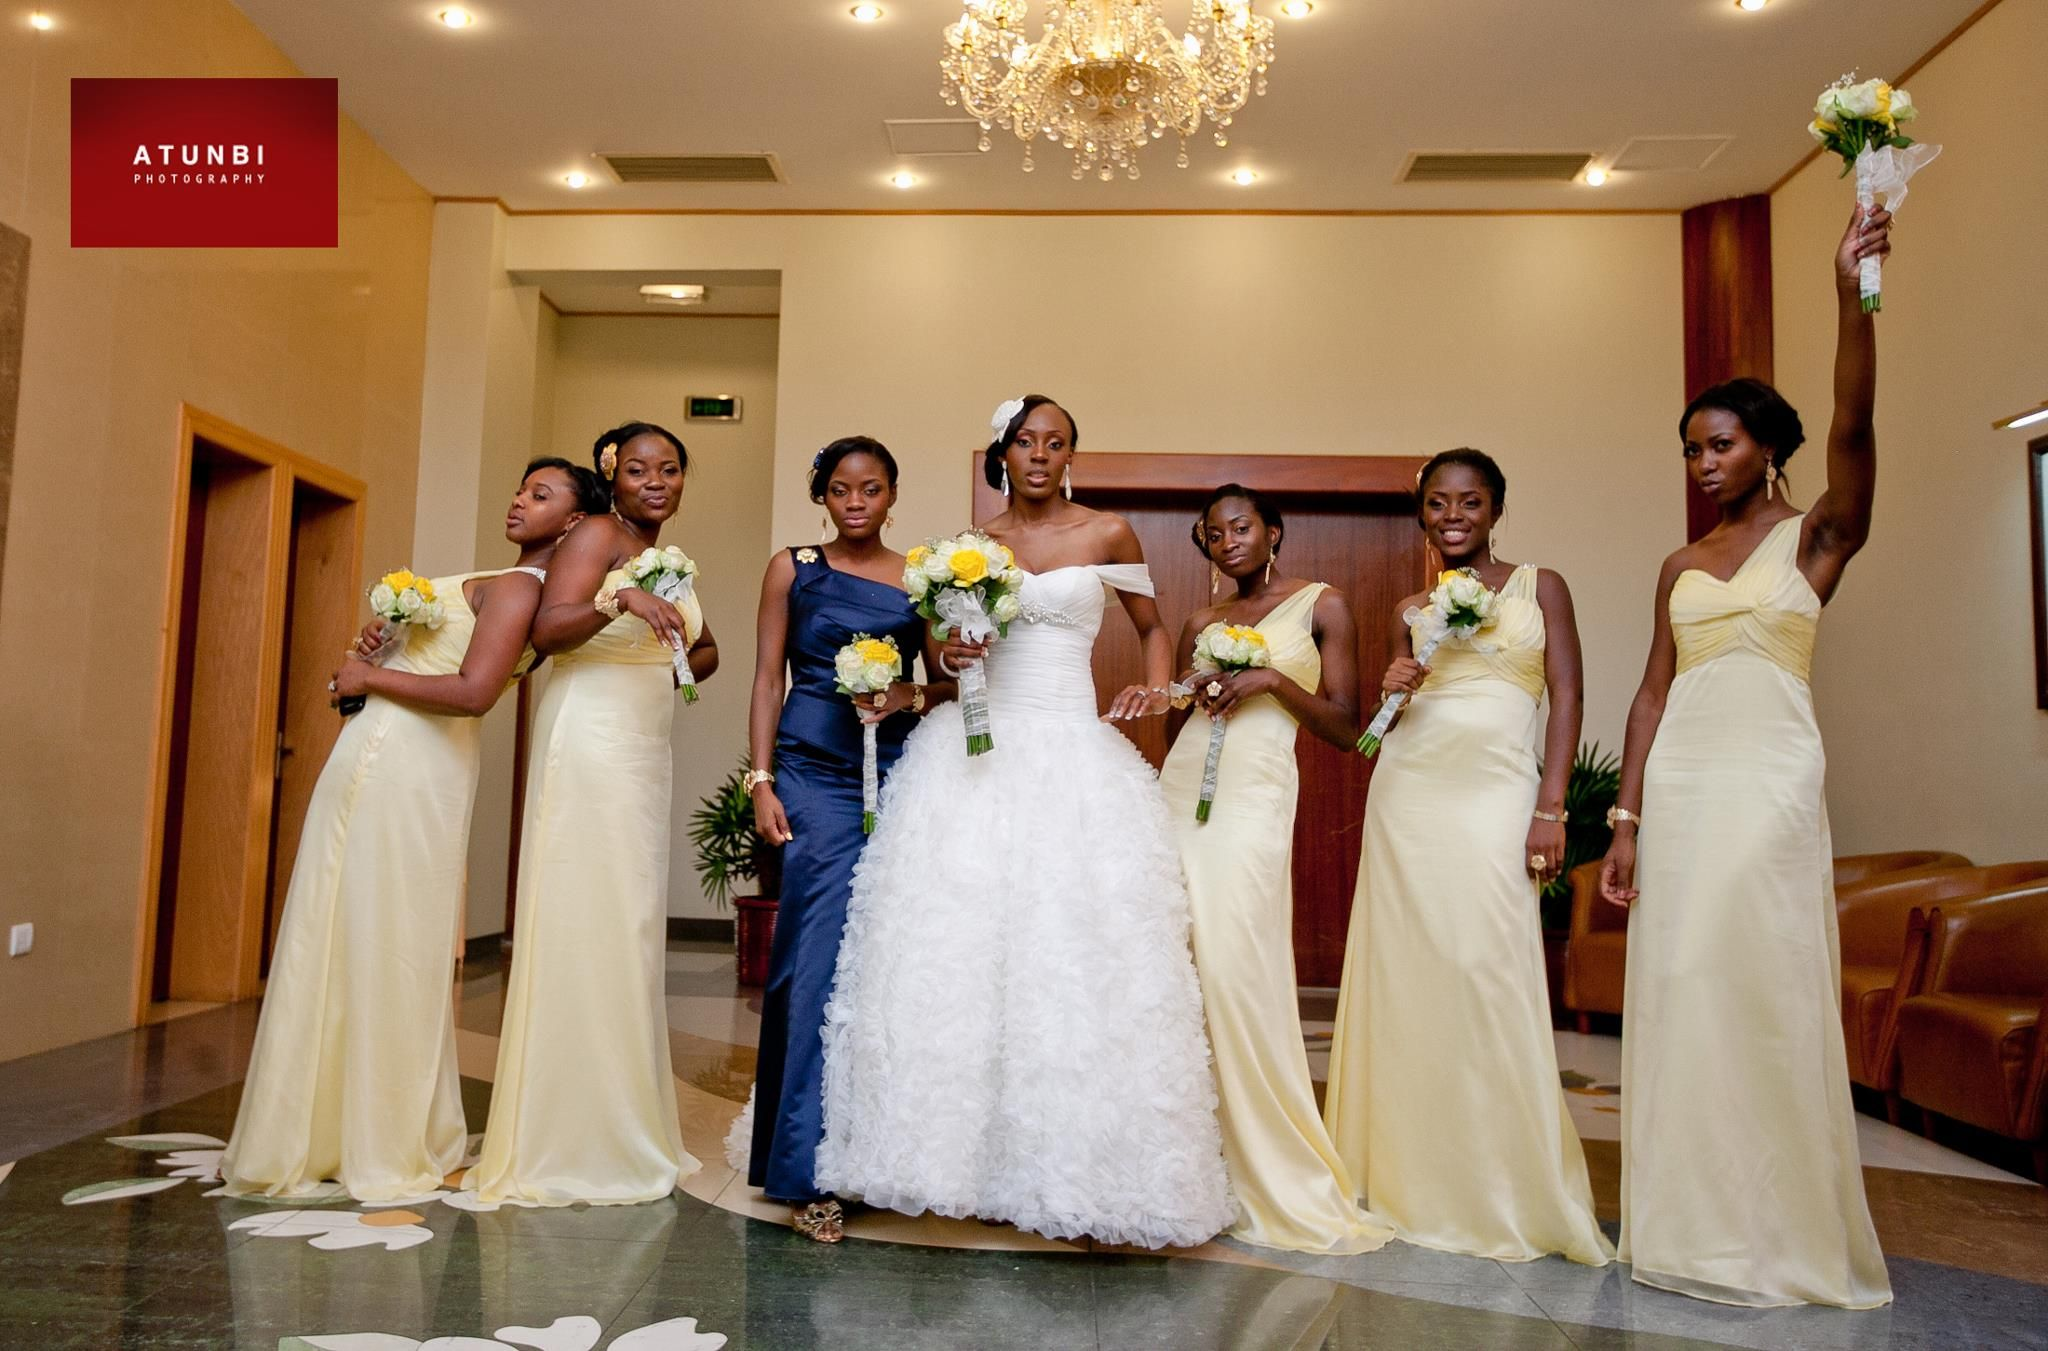 African wedding dresses for guests  African Sweetheart Weddings Smoking Hot Bridesmaids Part